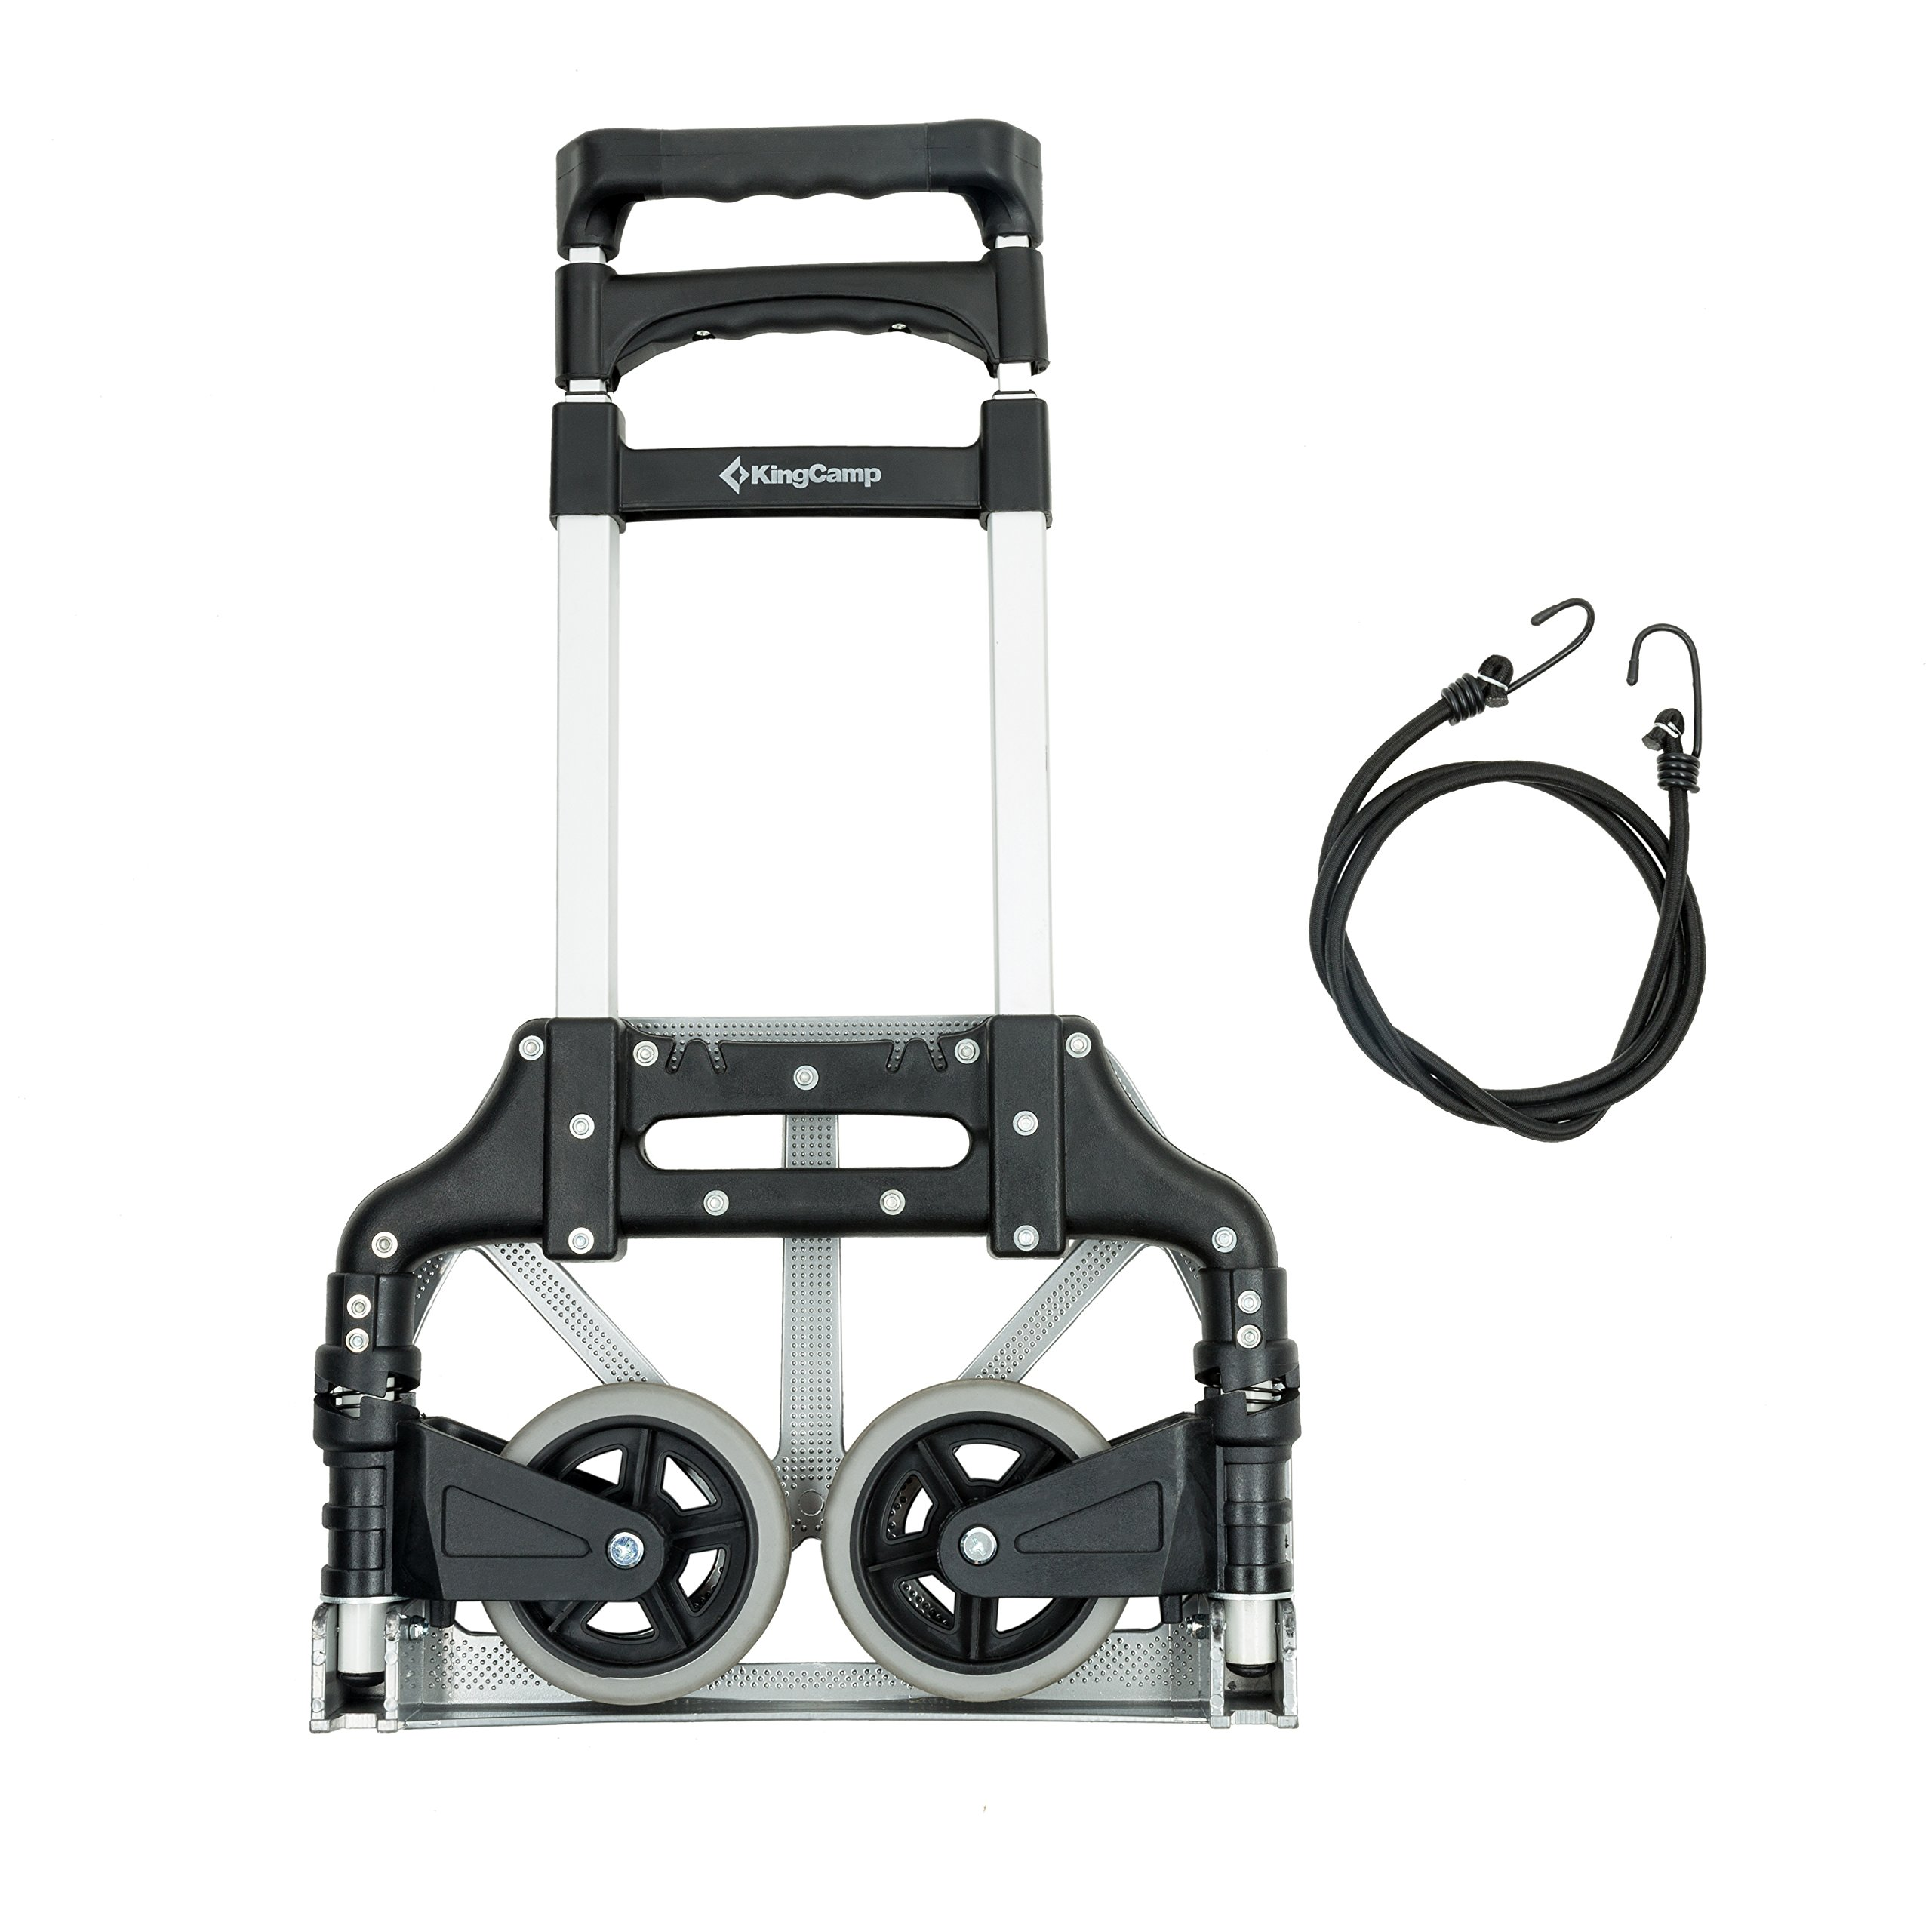 KingCamp Folding Cart 150 lbs Capacity Hand Truck with Bungee Cord by KingCamp (Image #3)